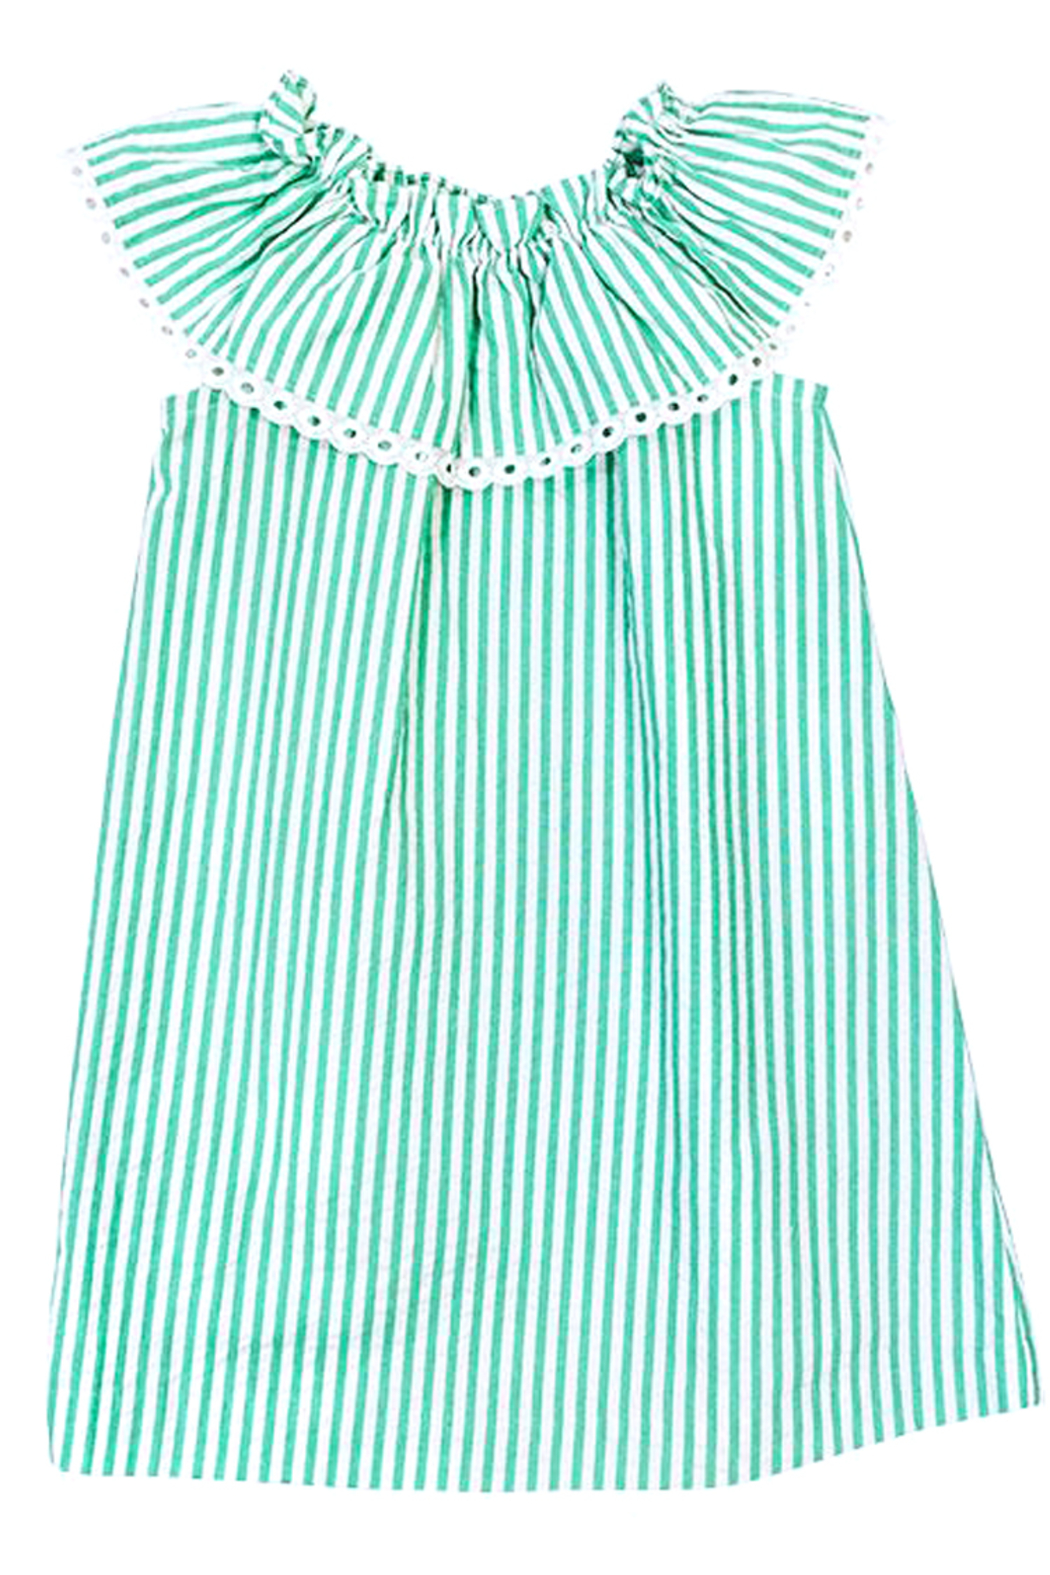 Bailey Boys Parrot-Green Seersucker KiKi-Dress - Back Cropped Image